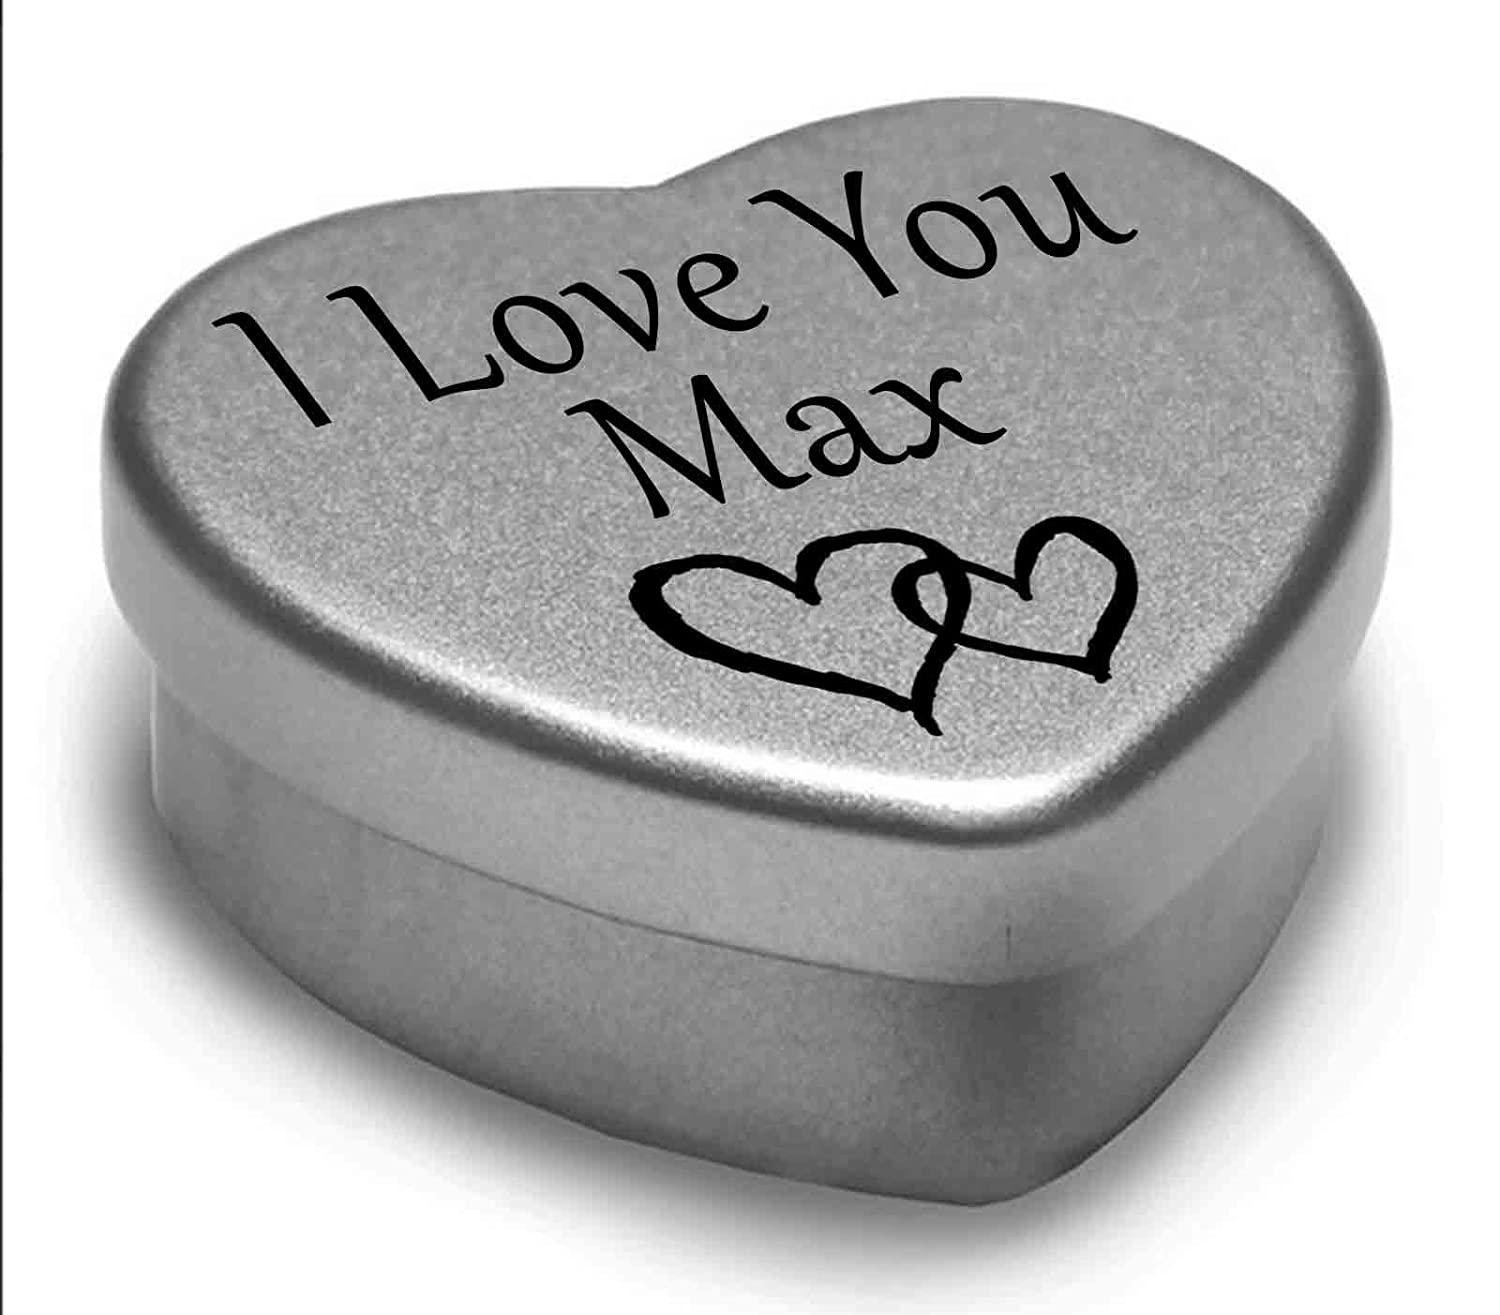 I Love You Max Mini Heart Tin Gift For I Heart Max With Chocolates. Silver Heart Tin. Fits Beautifully in the Palm of Your Hand. Great as a Birthday Present or Just as a Special Gift to Show Somebody How Much You Love Them. Gift In Can Ltd